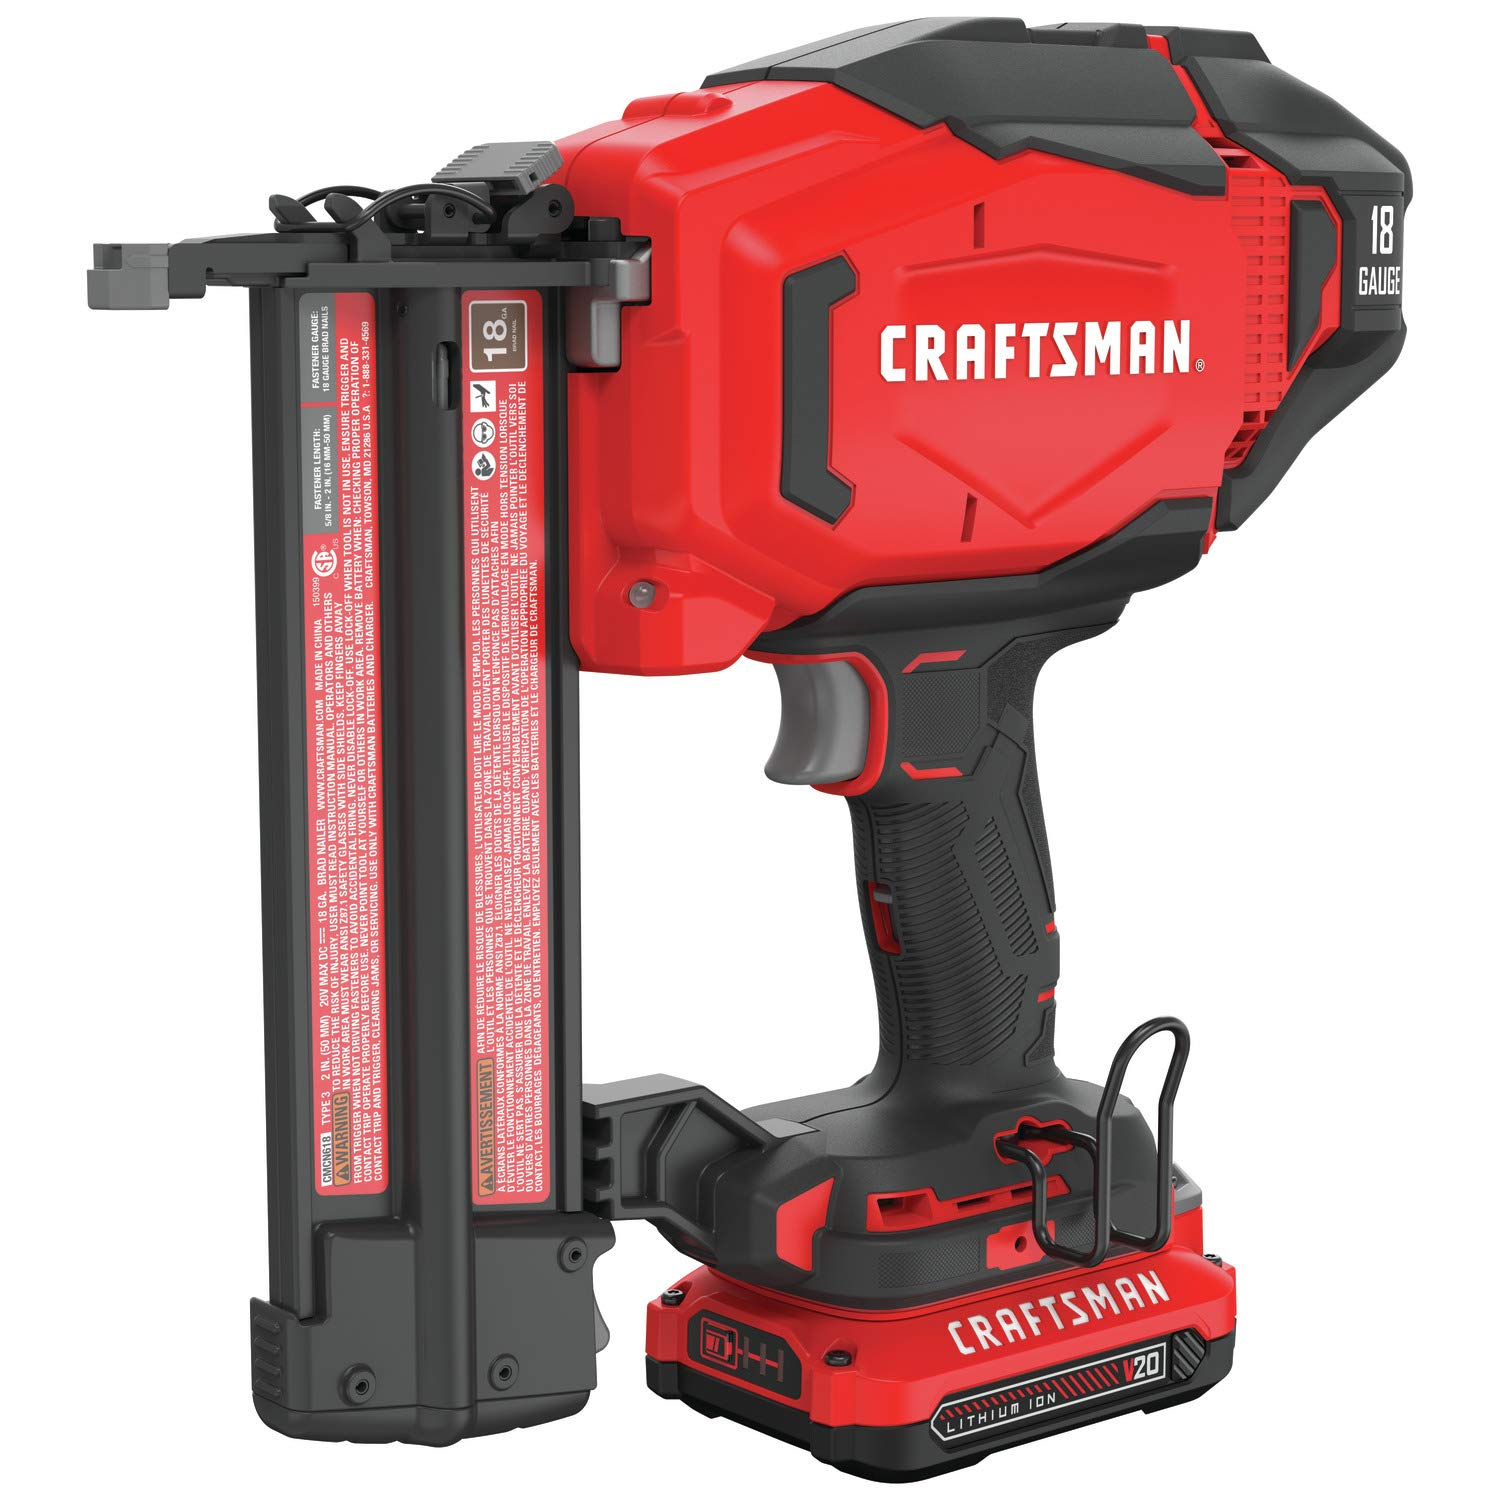 CRAFTSMAN V20 Cordless Finish Nailer Kit, 18GA (CMCN618C1)